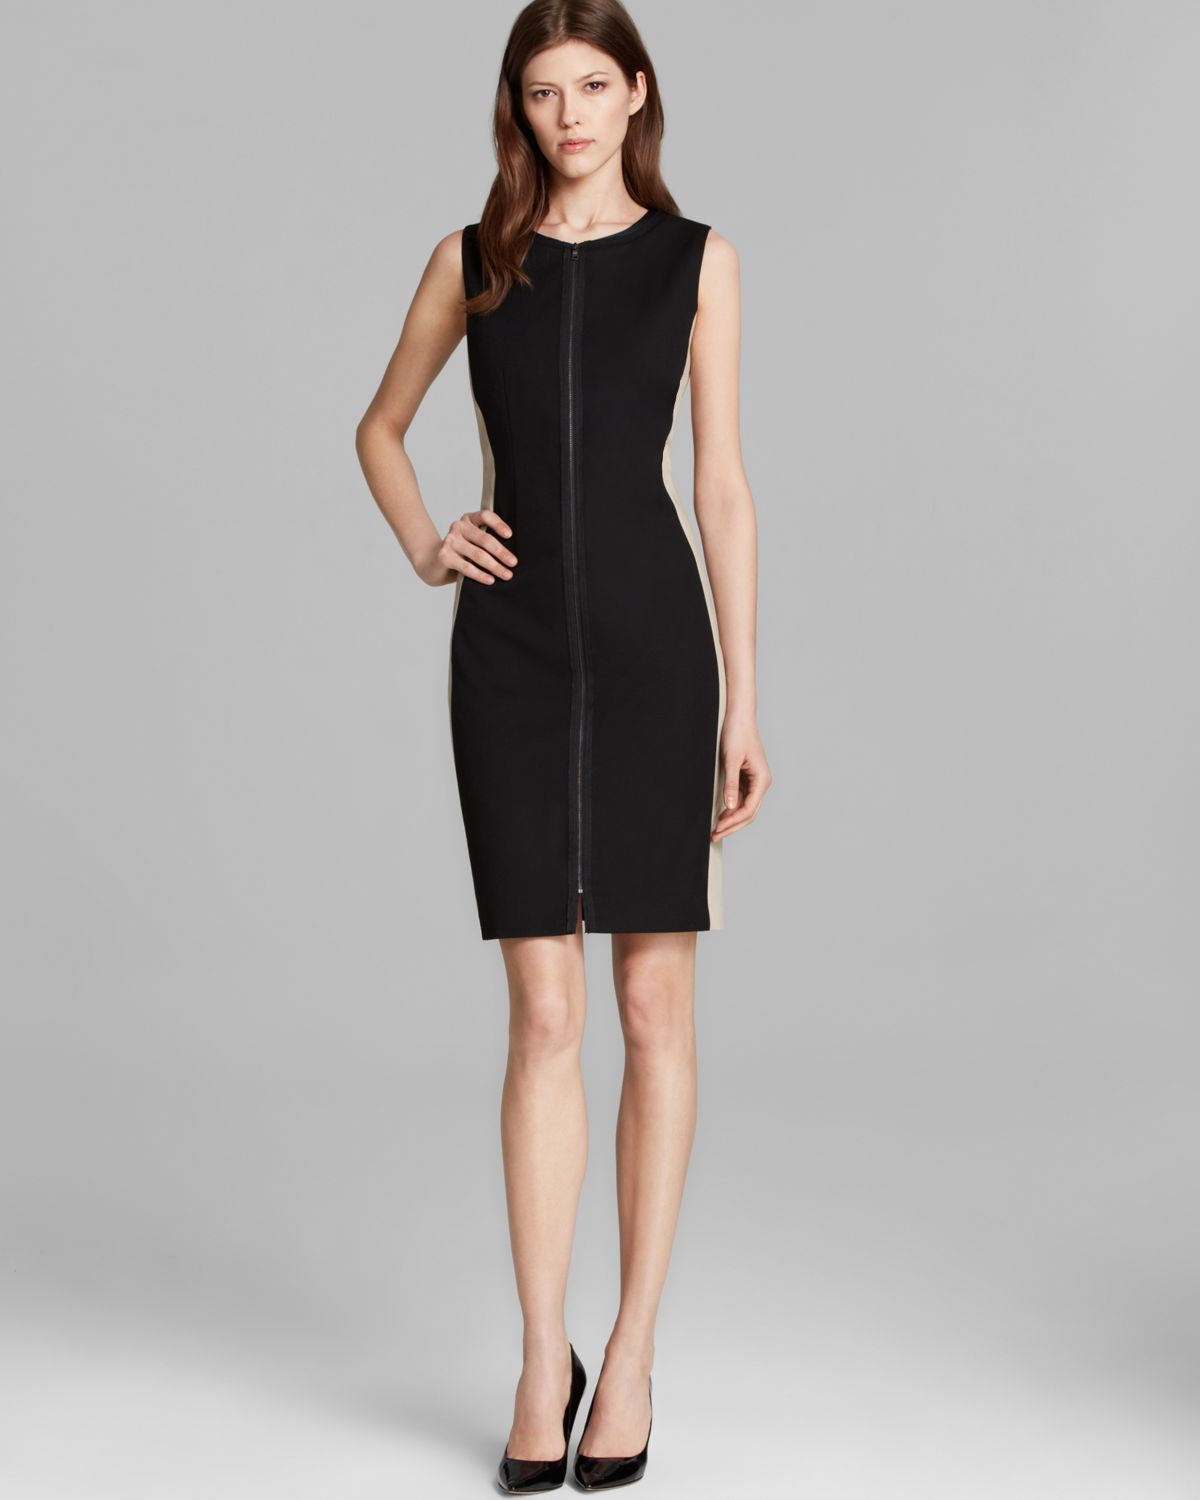 T tahari avani sleeveless side zip dress in black lyst for Tahari t shirt mens